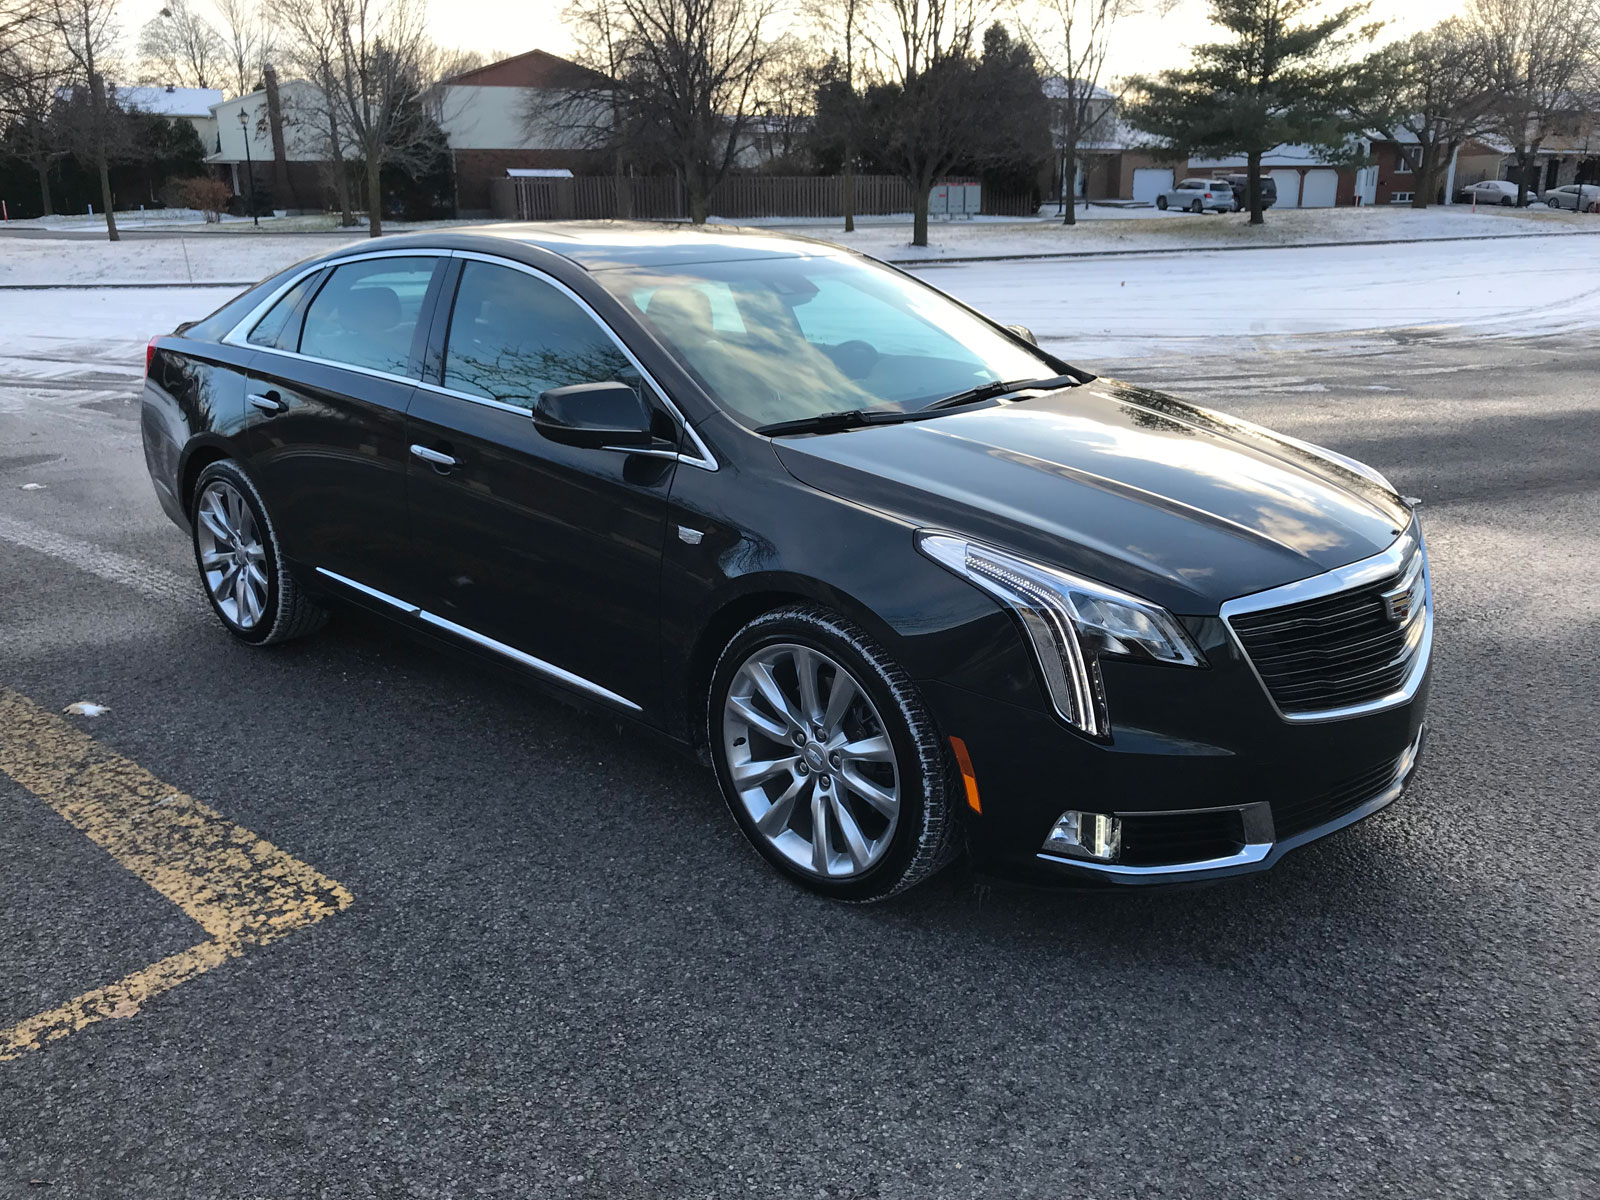 2018 Cadillac XTS V-Sport Review – Show Me The Buttons